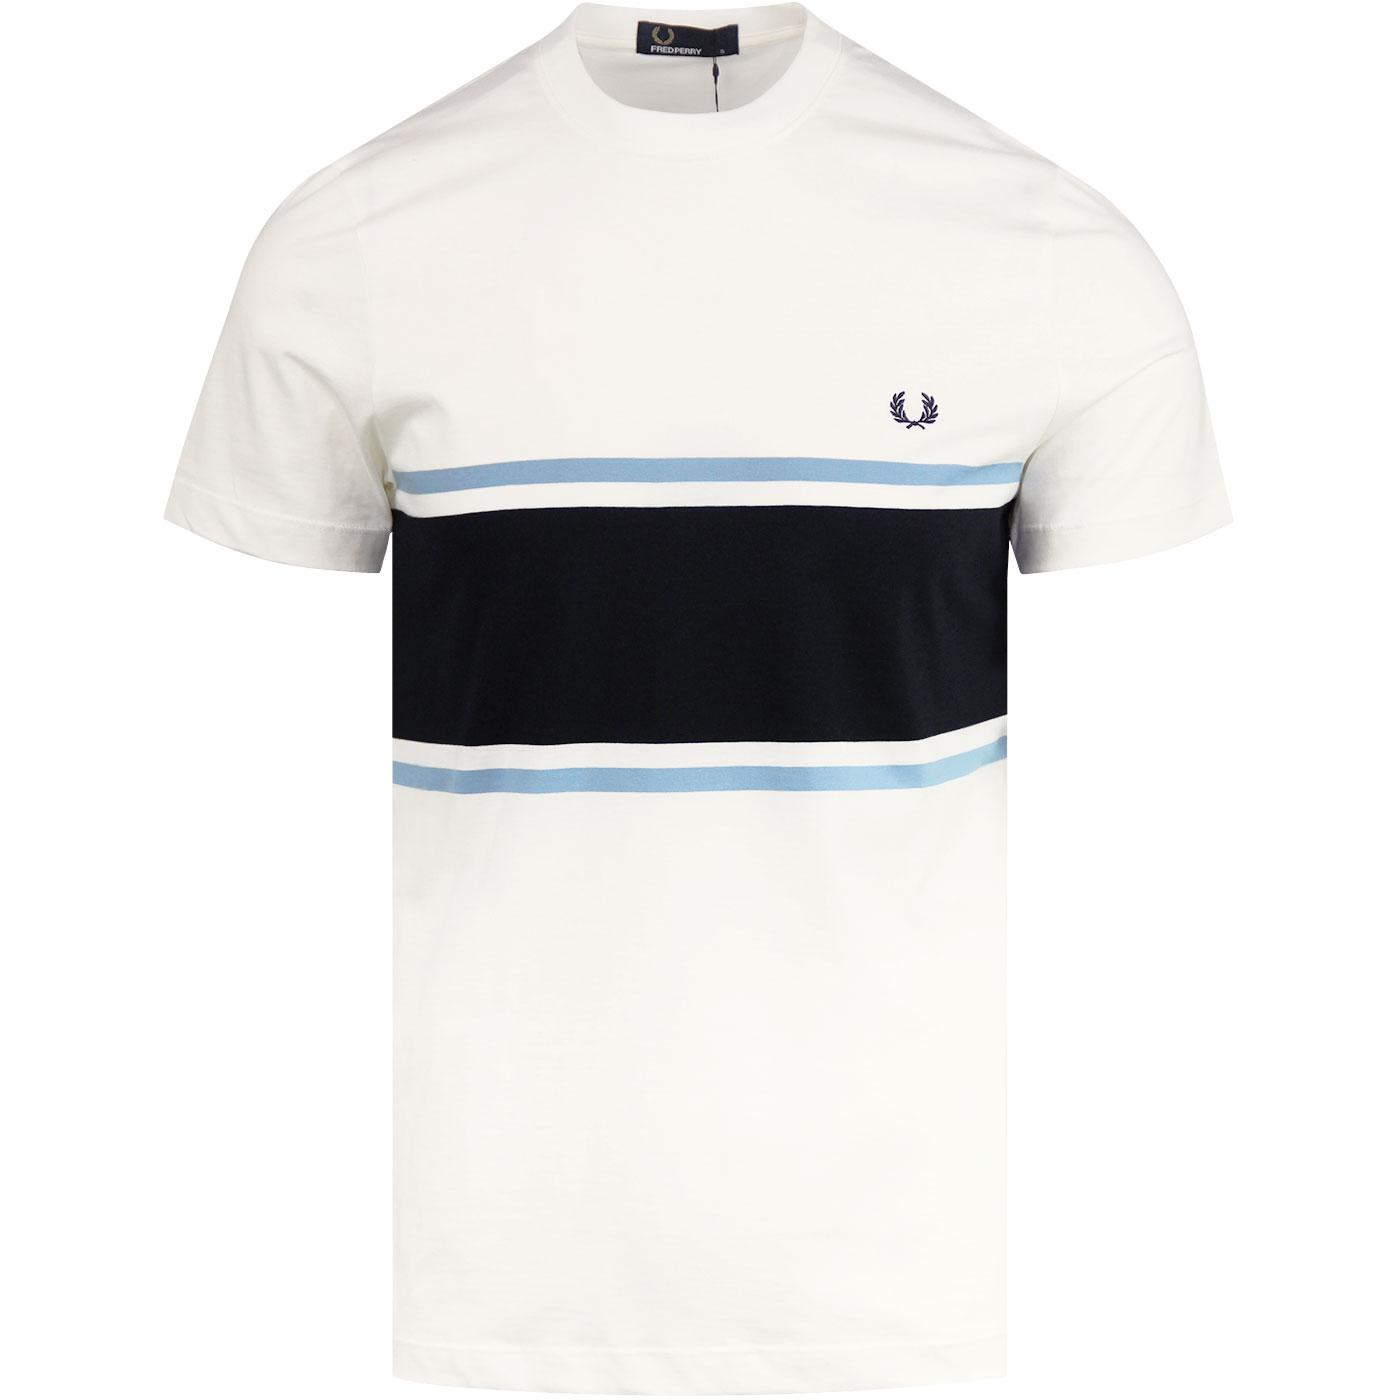 FRED PERRY Retro Mod Colour Block Crew Tee (SW)